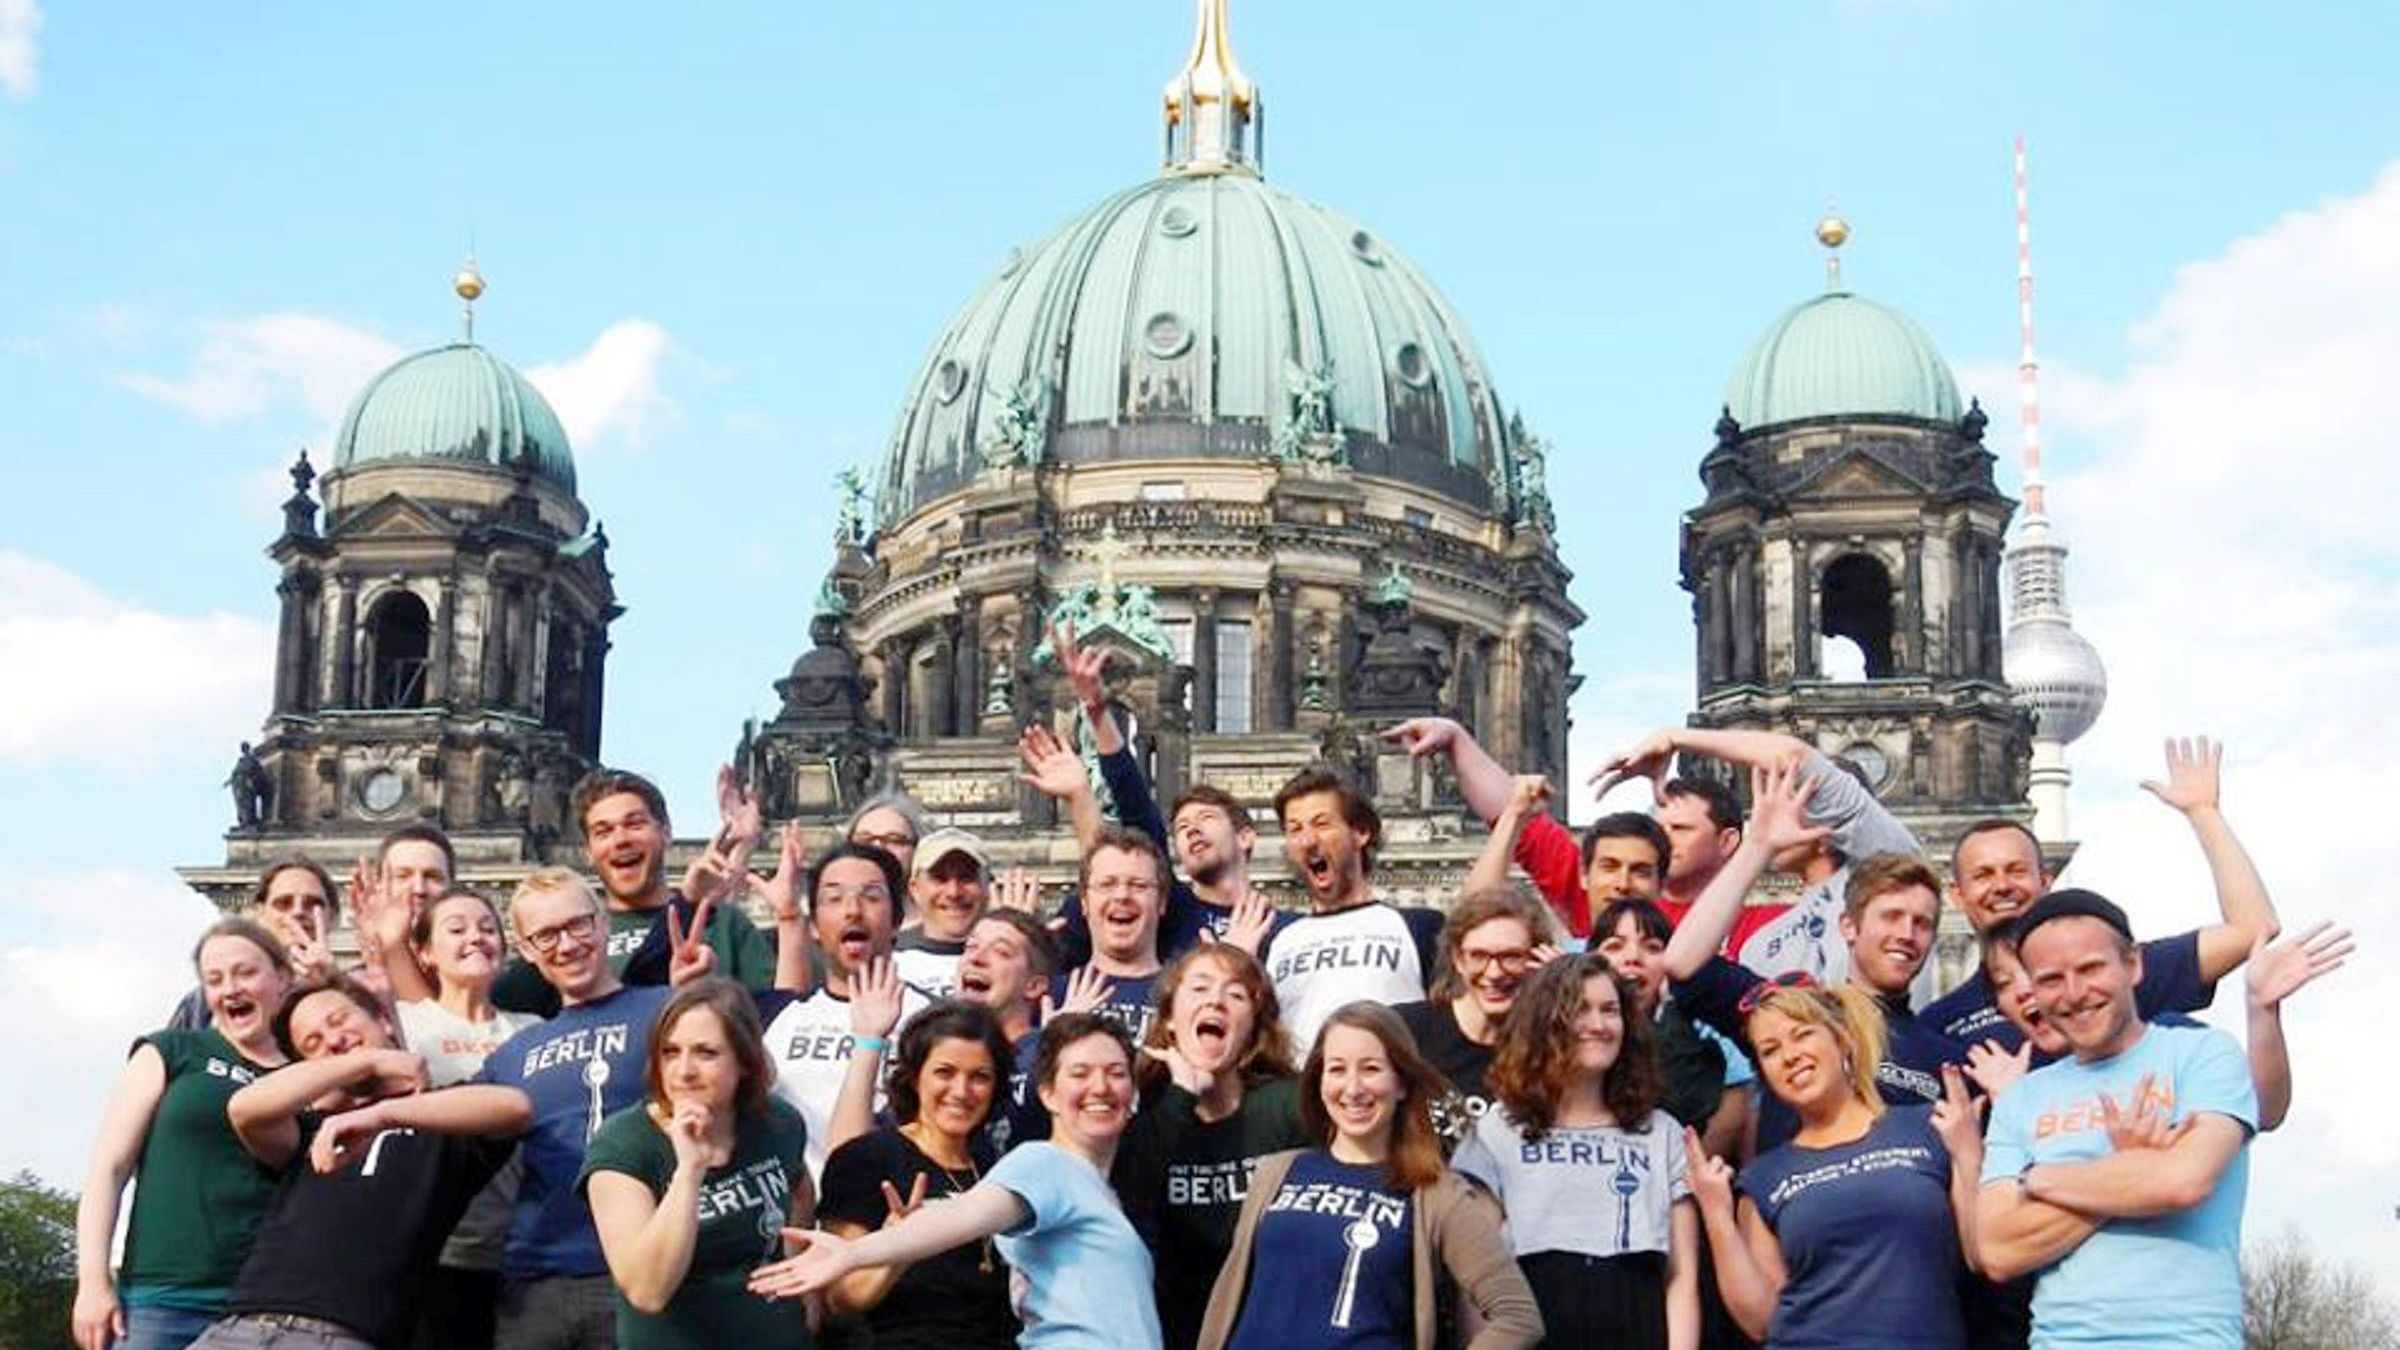 Tour group posing in front of the Berlin cathedral